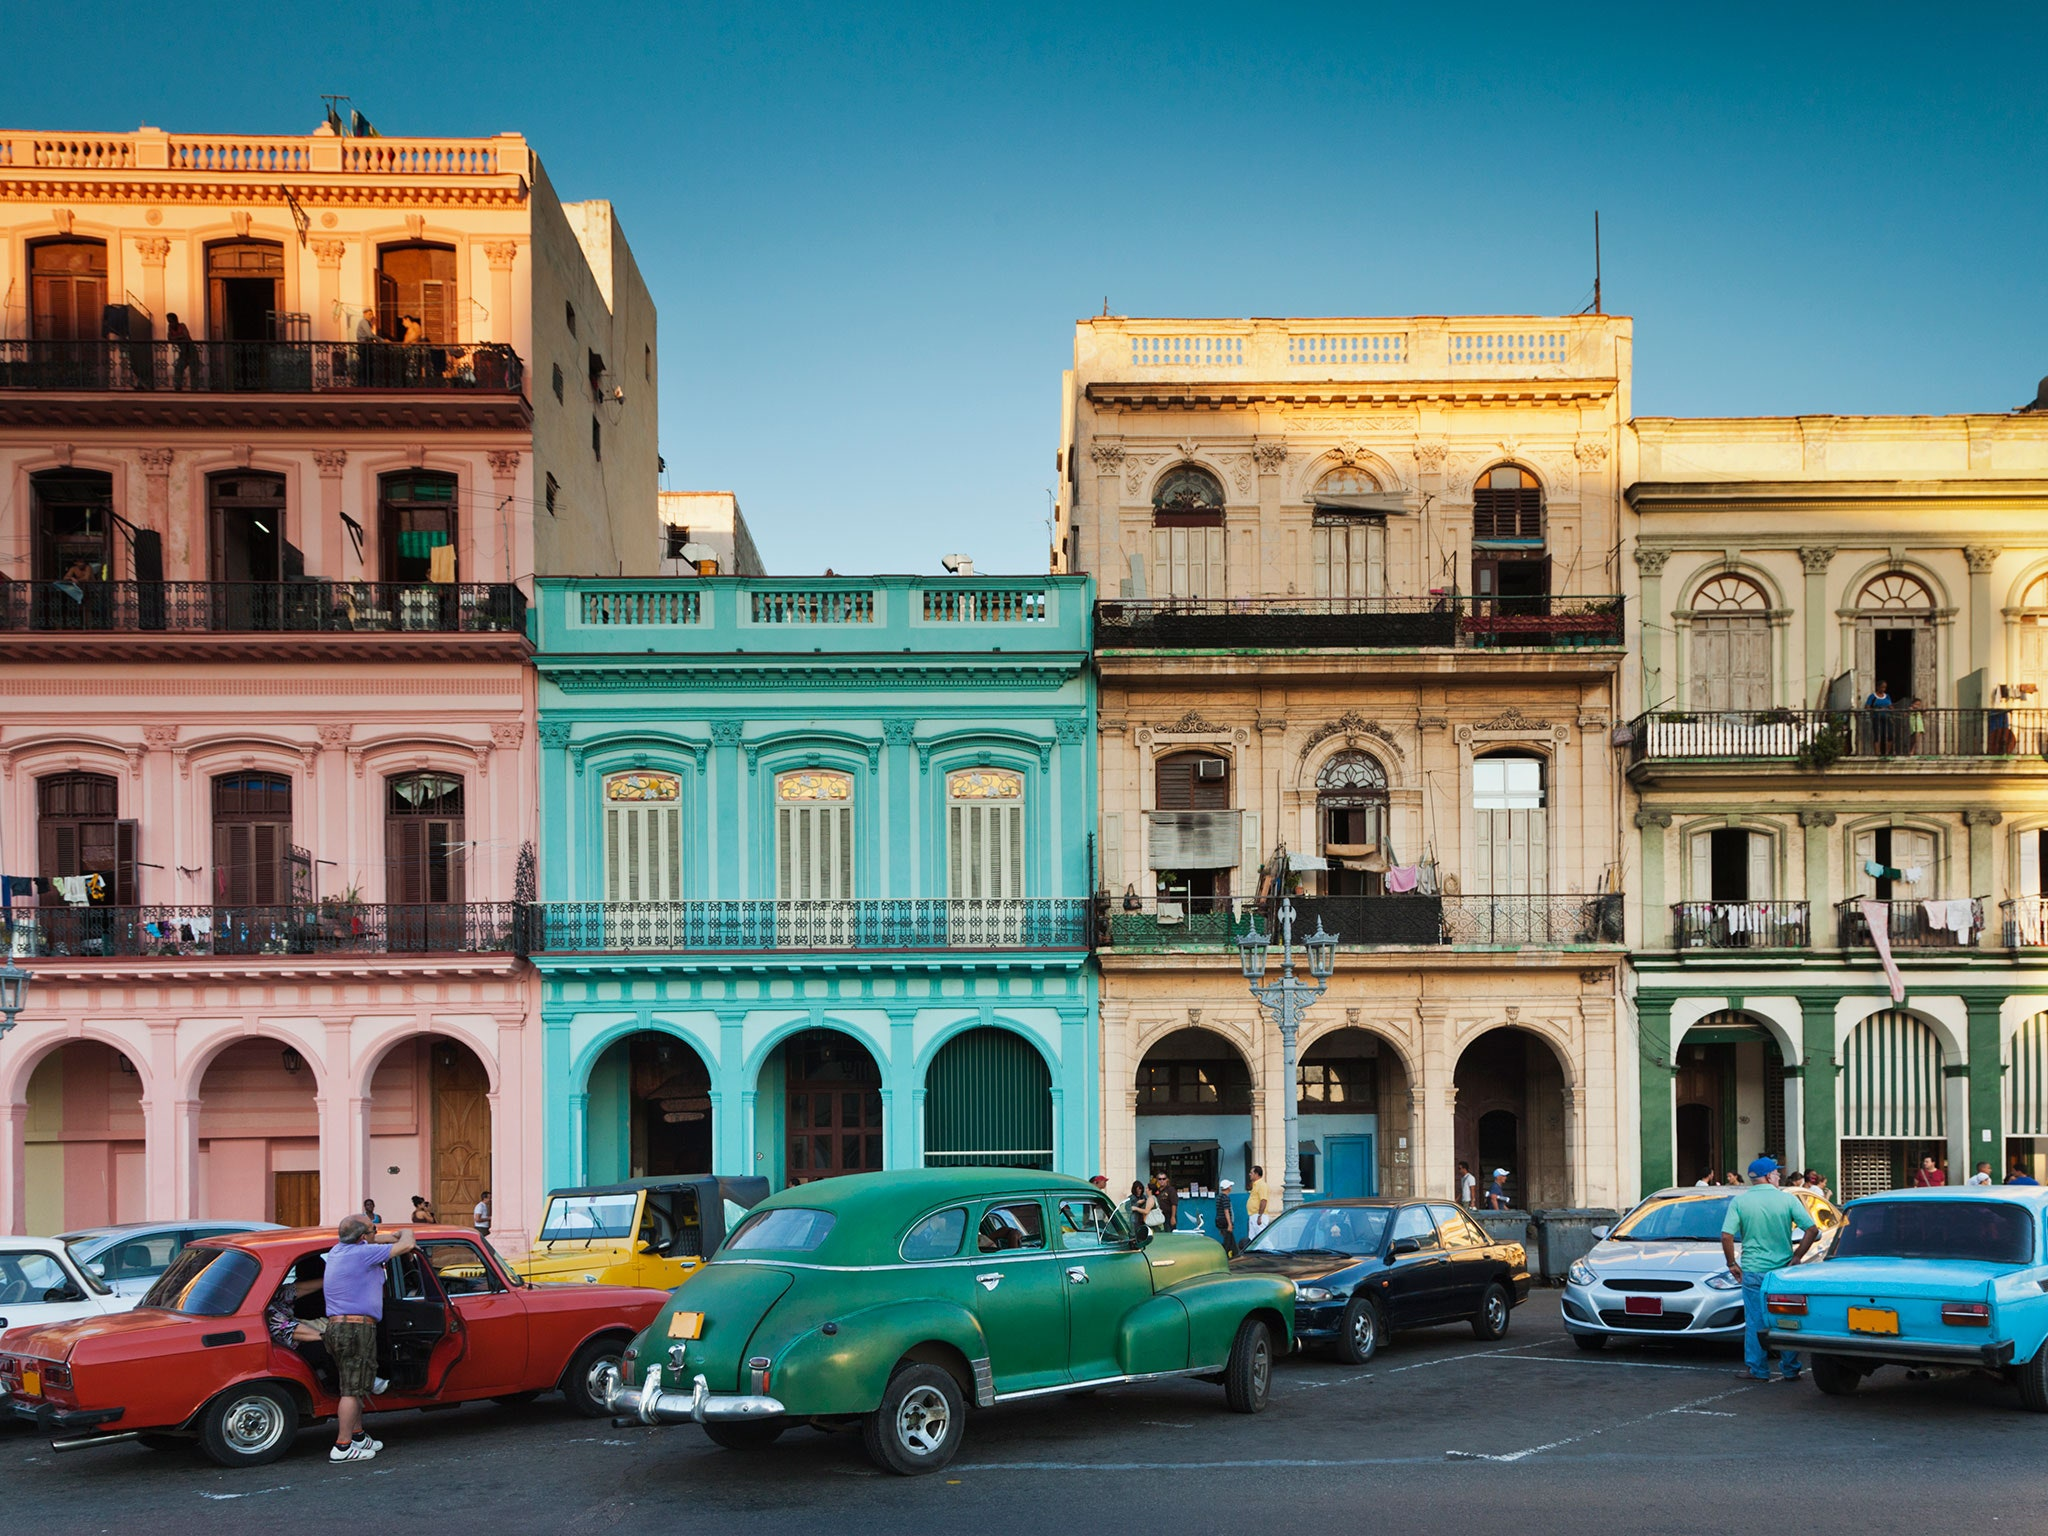 The Most Colorful Cities In The World - Photos - Condé ...